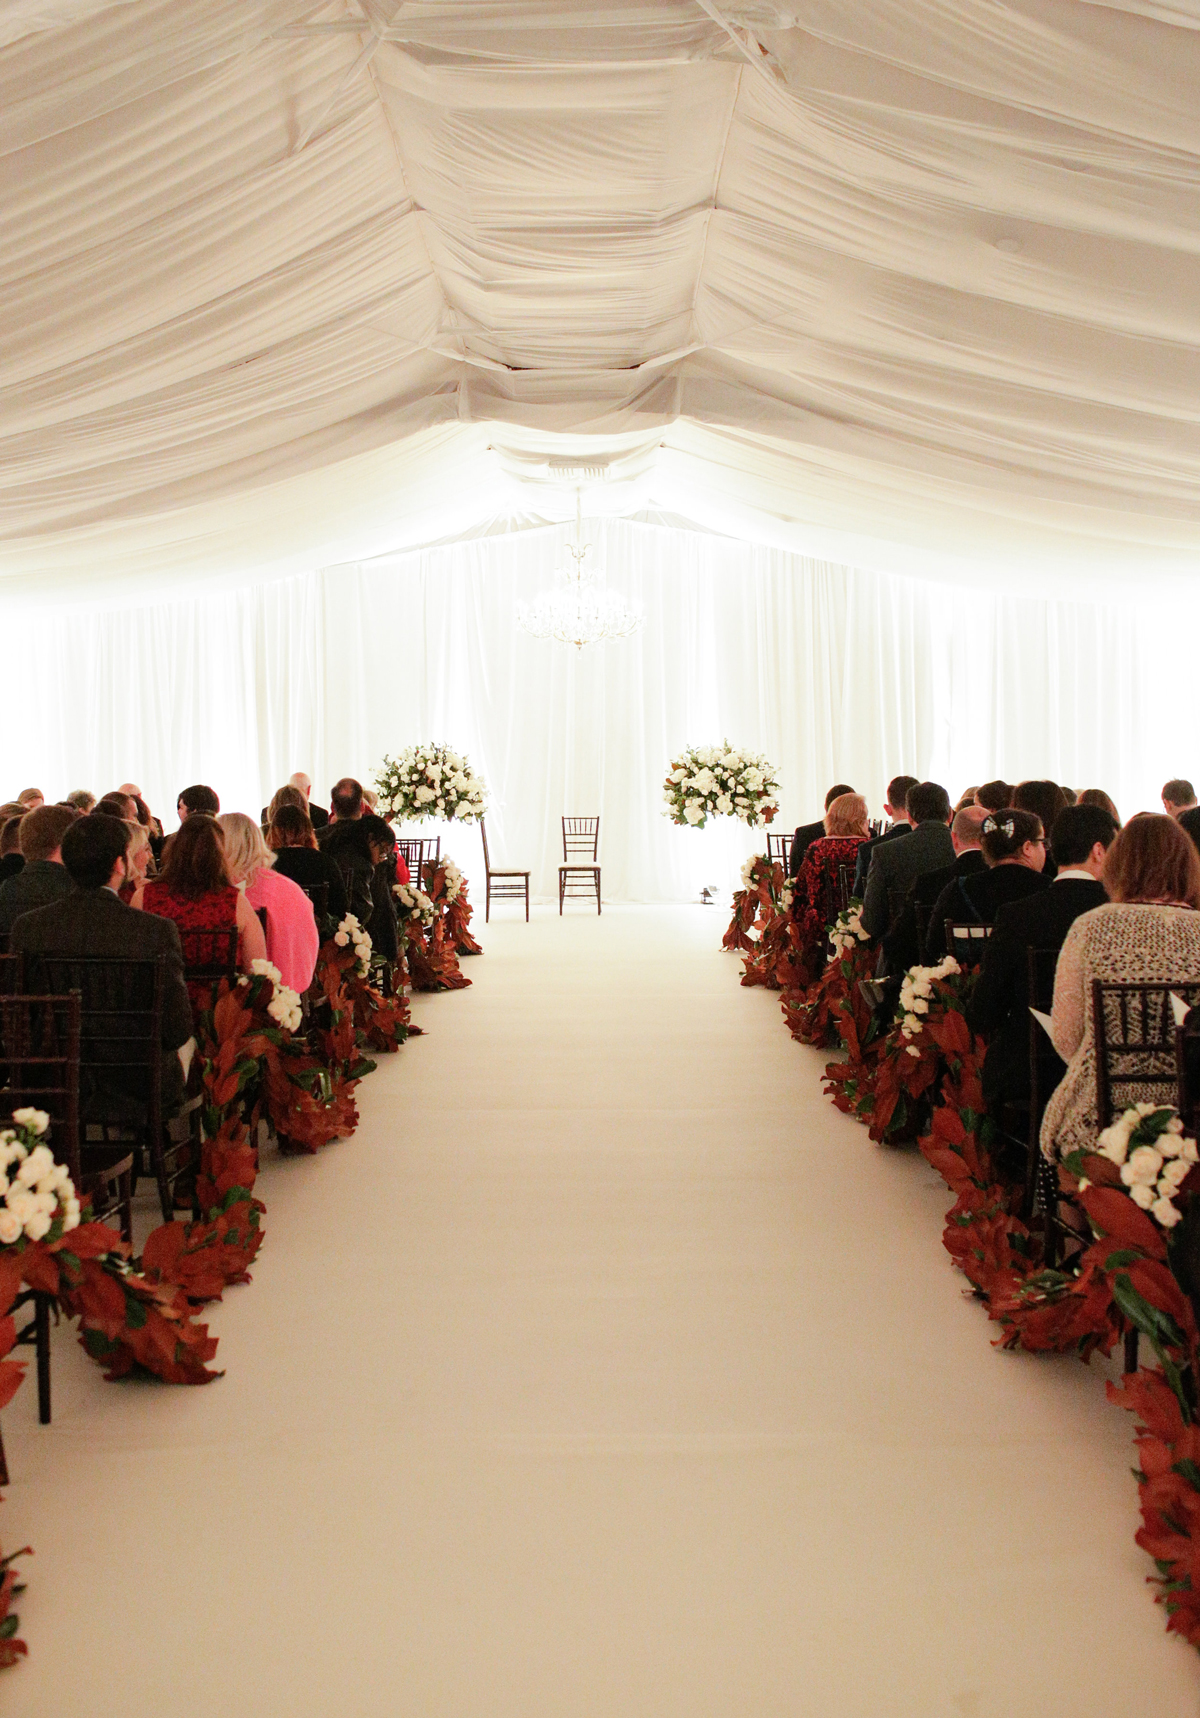 elizabeth seth wedding ceremony aisles lined with red flowers